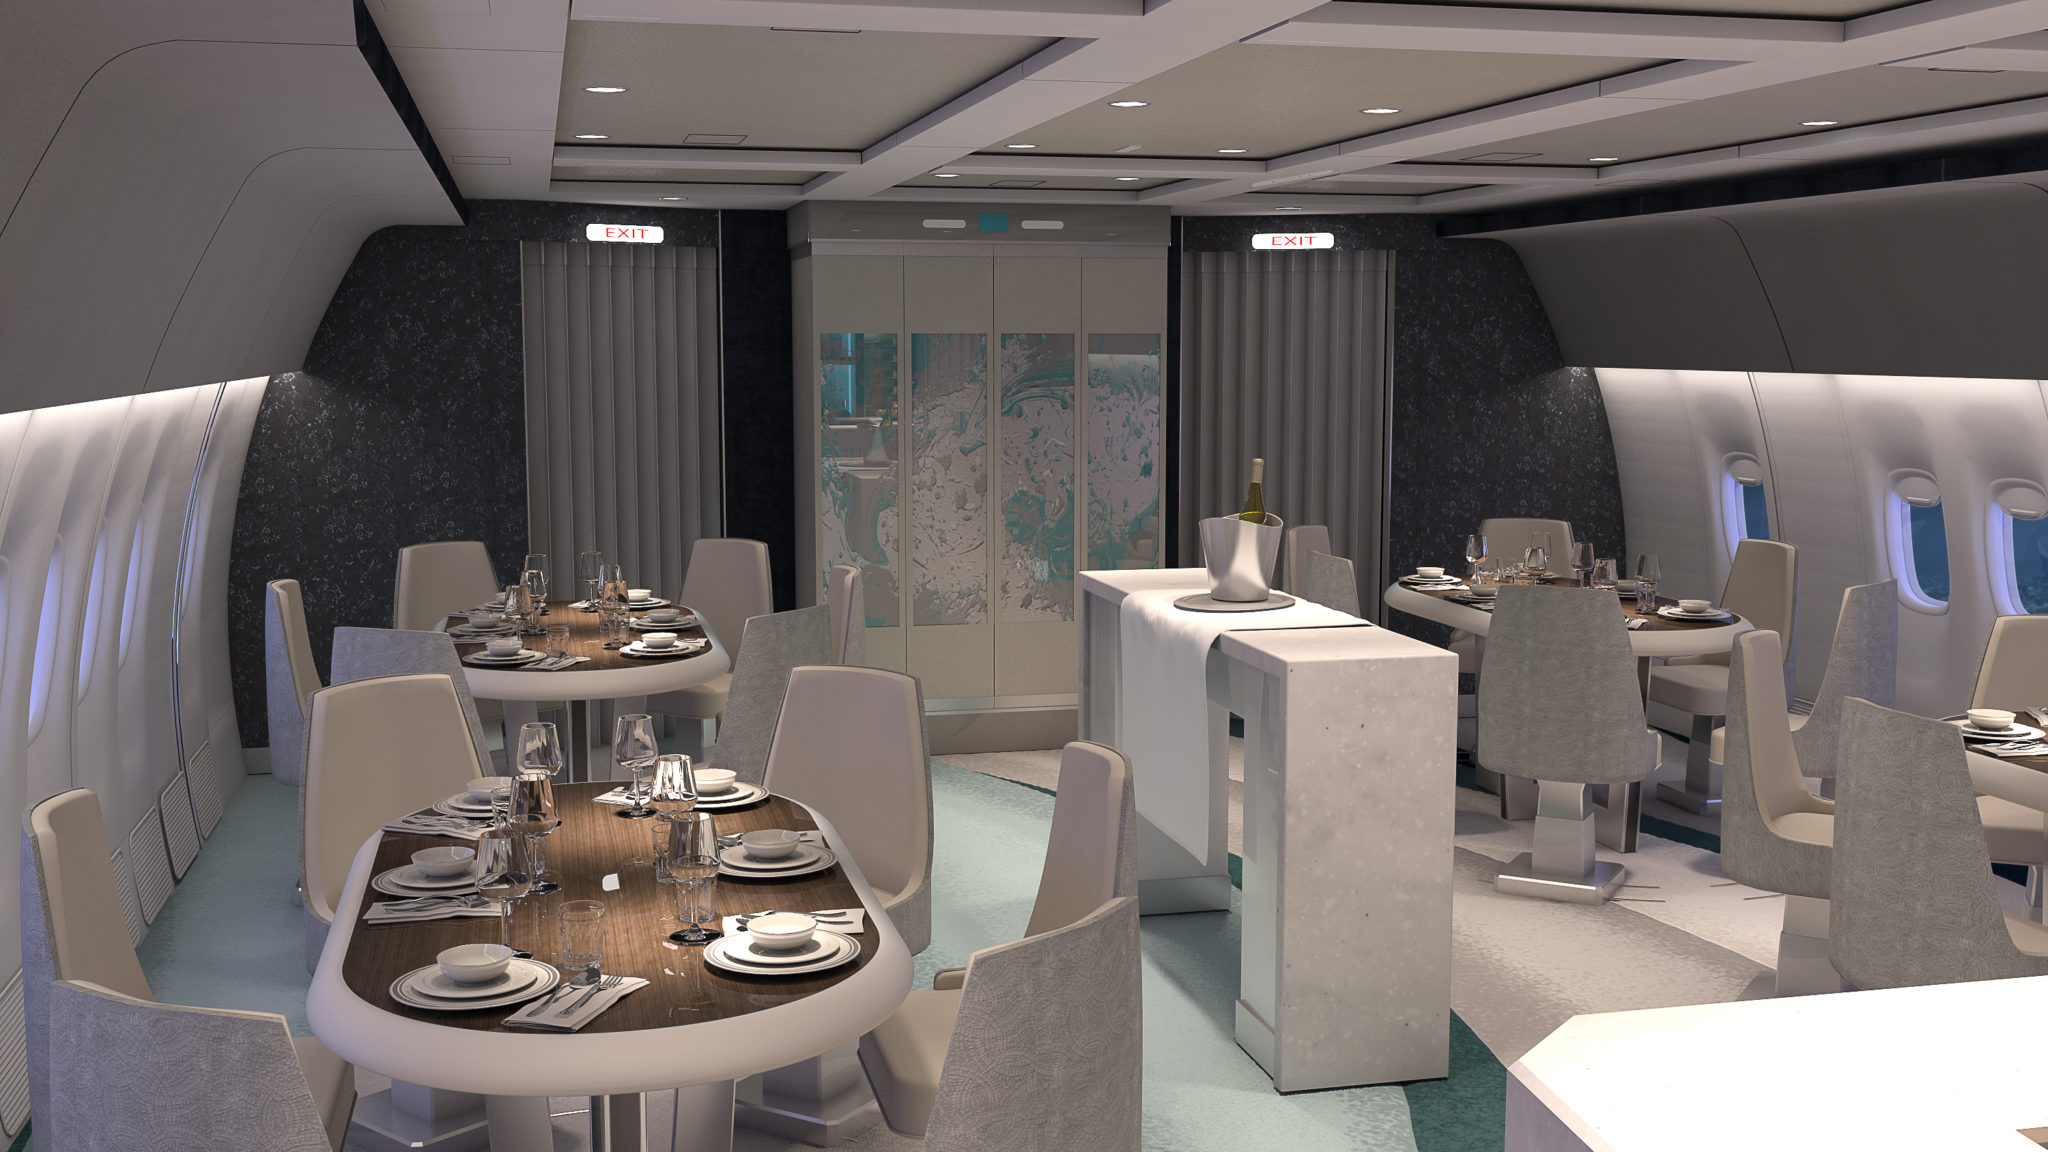 Crsytal AirCruise takes things to the next level above premium with a exceptional dining area. Image: Crystal Cruises